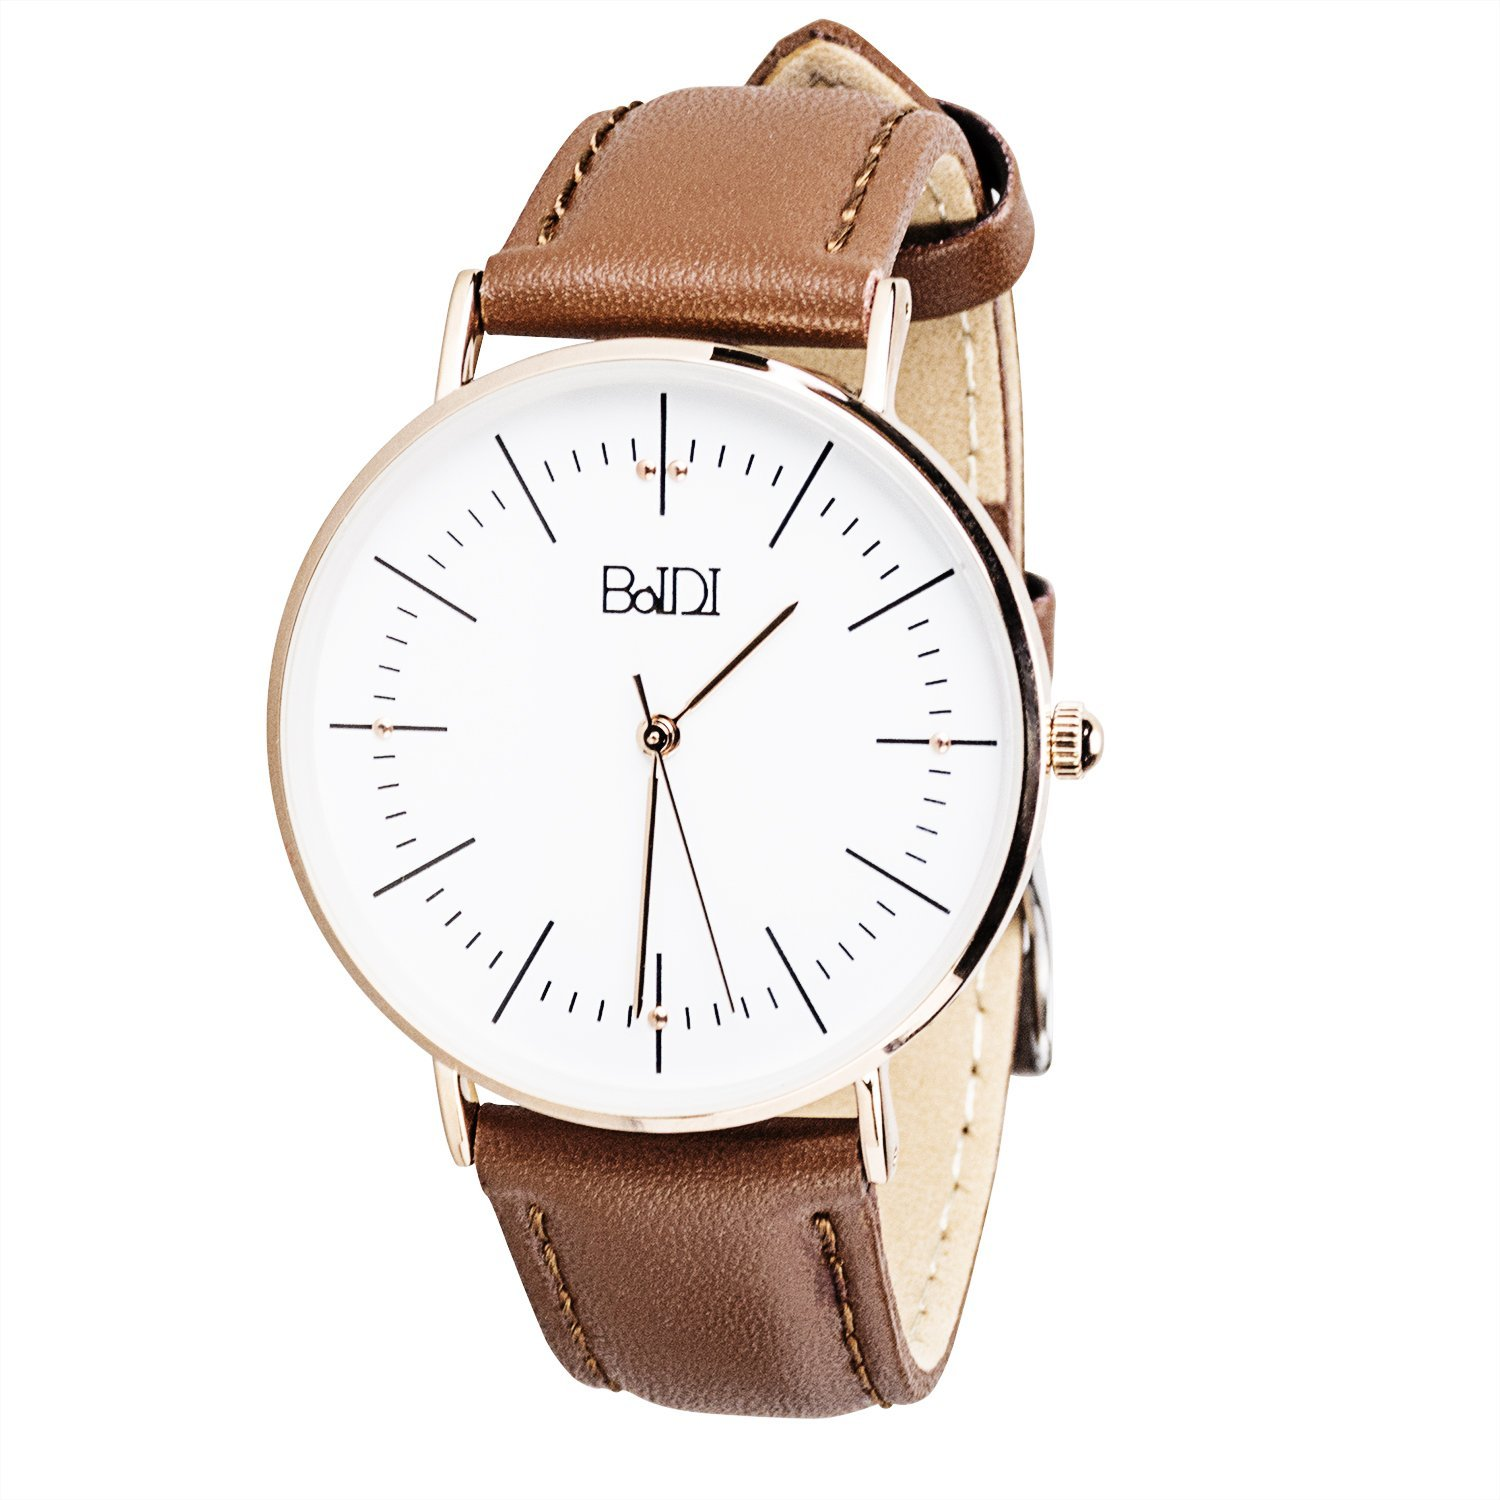 BaIDI Wrist Watch Quartz Watches Womens Daily Use Waterproof Analog Watch with Second Hand & Brown Leather Strap Durable Analogue Watches for Women Girls Ladies